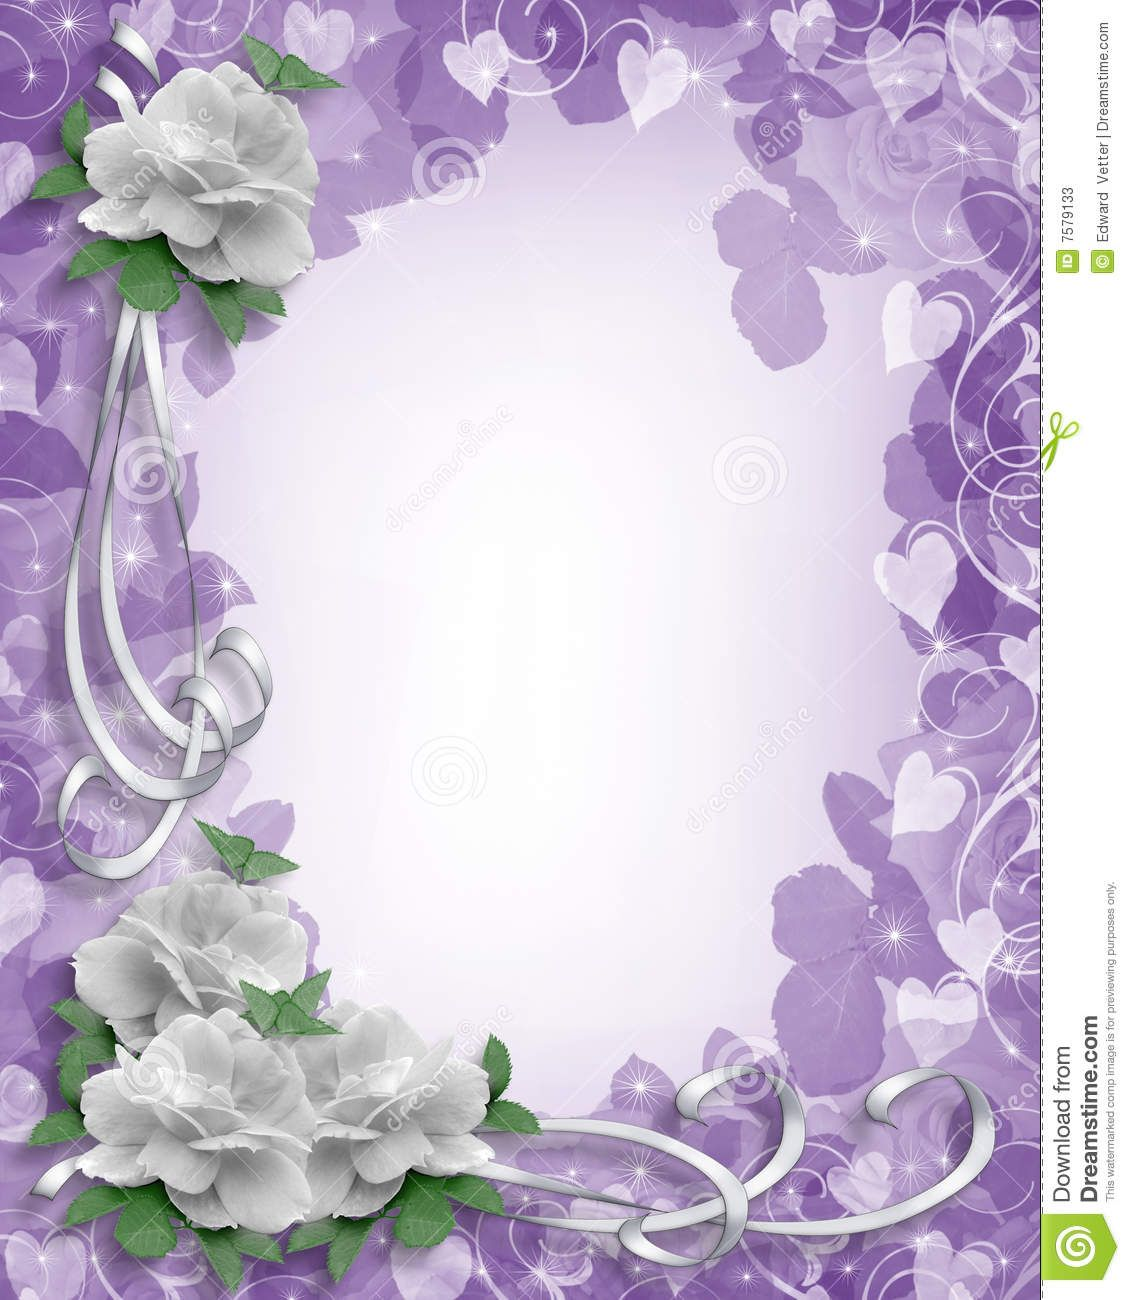 Lavender Border Image and illustration composition white